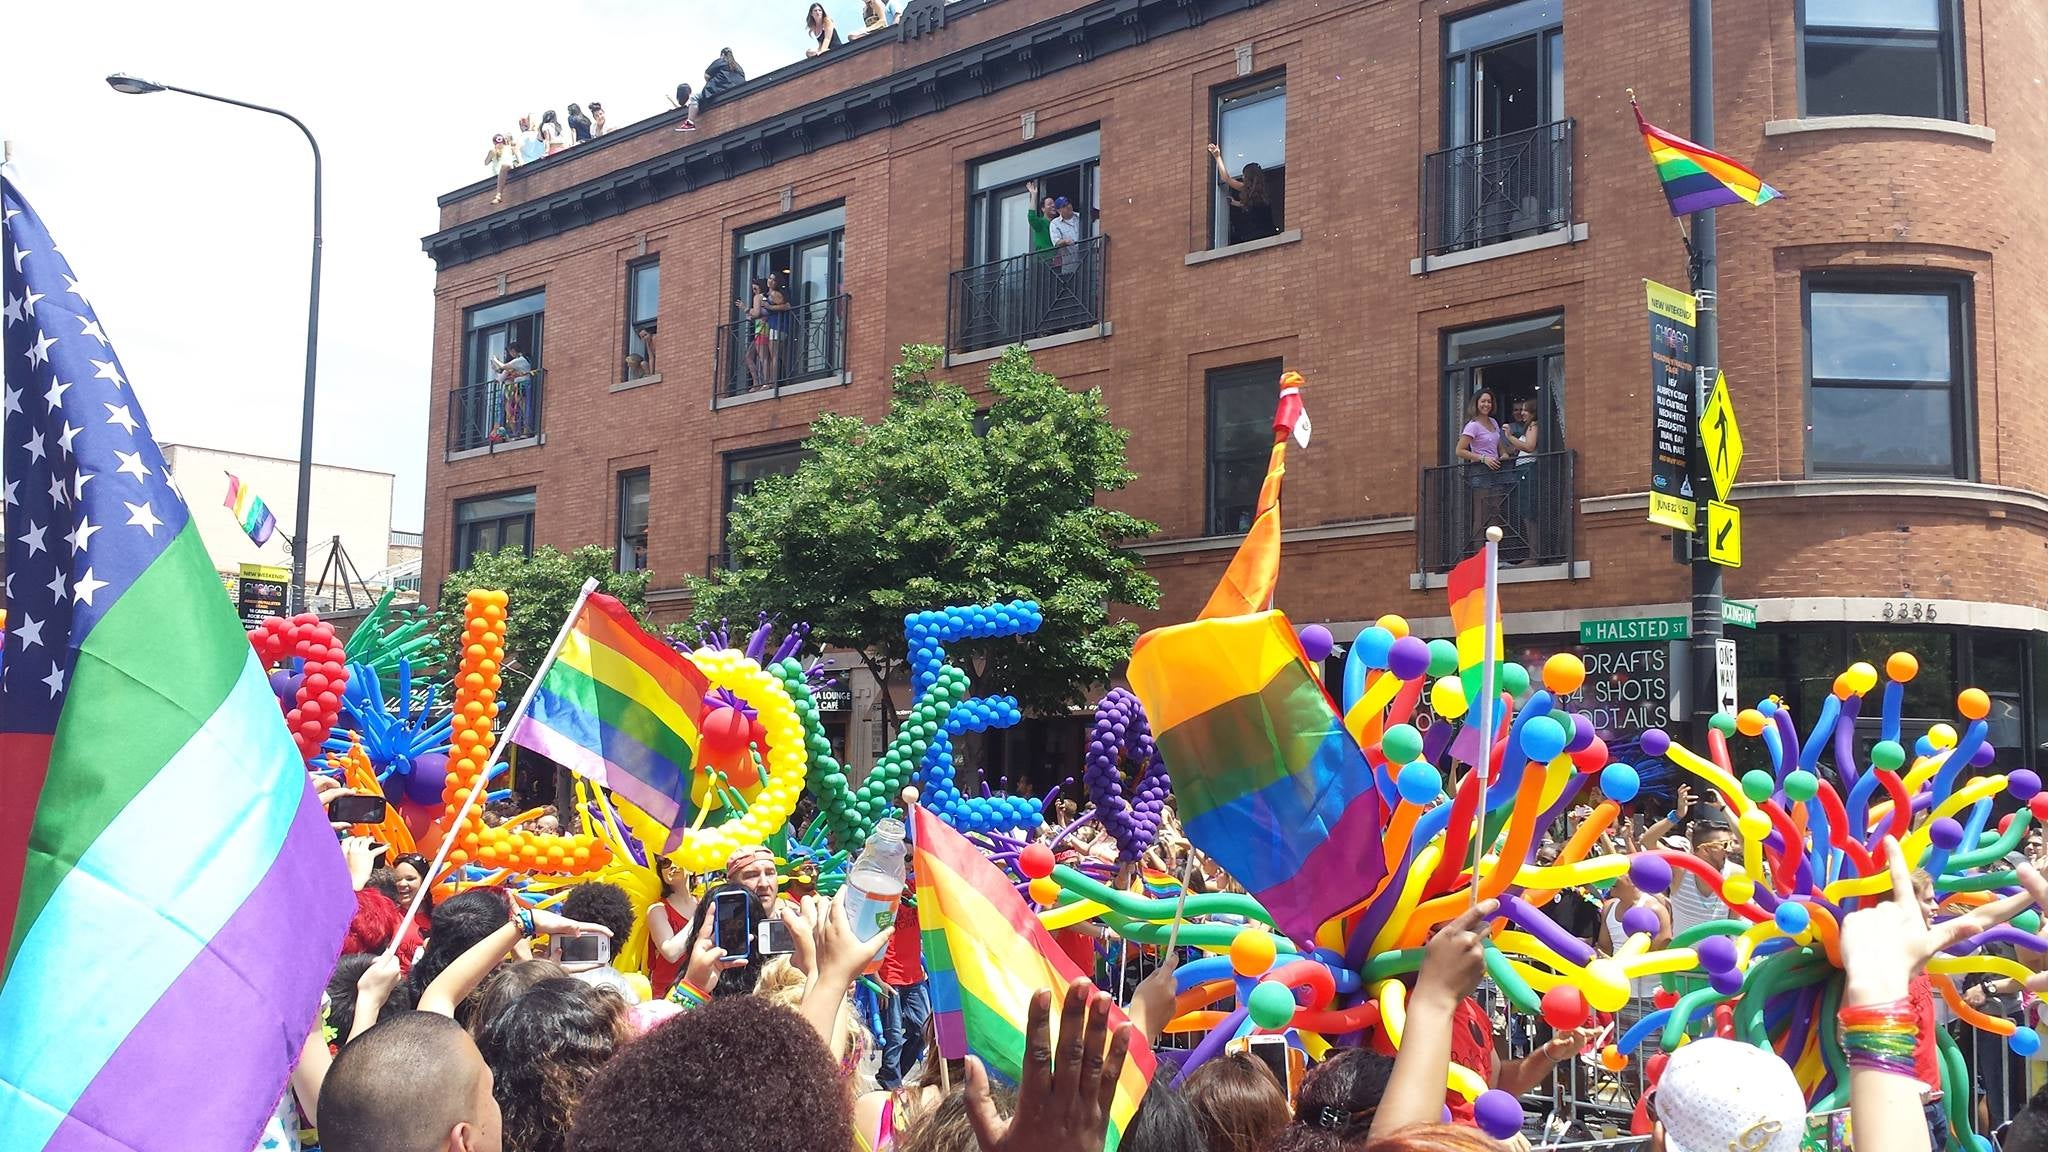 Love comes in all colors at the gay pride parade